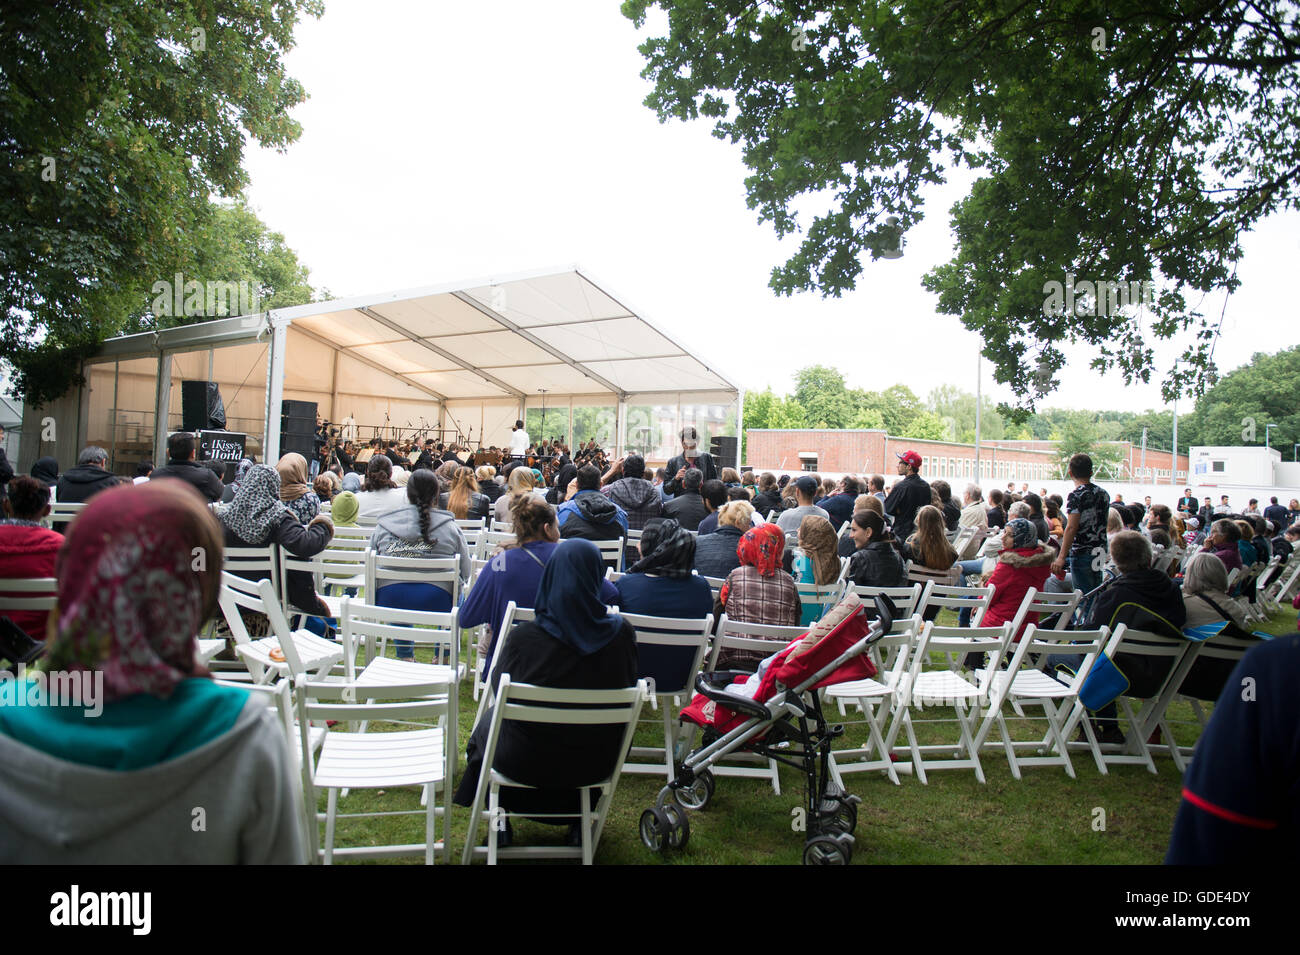 Hamburg-Osdorf, Germany. 15th July, 2016. The Hamburg Symphony Orchestra give an open air concert for refugees, - Stock Image